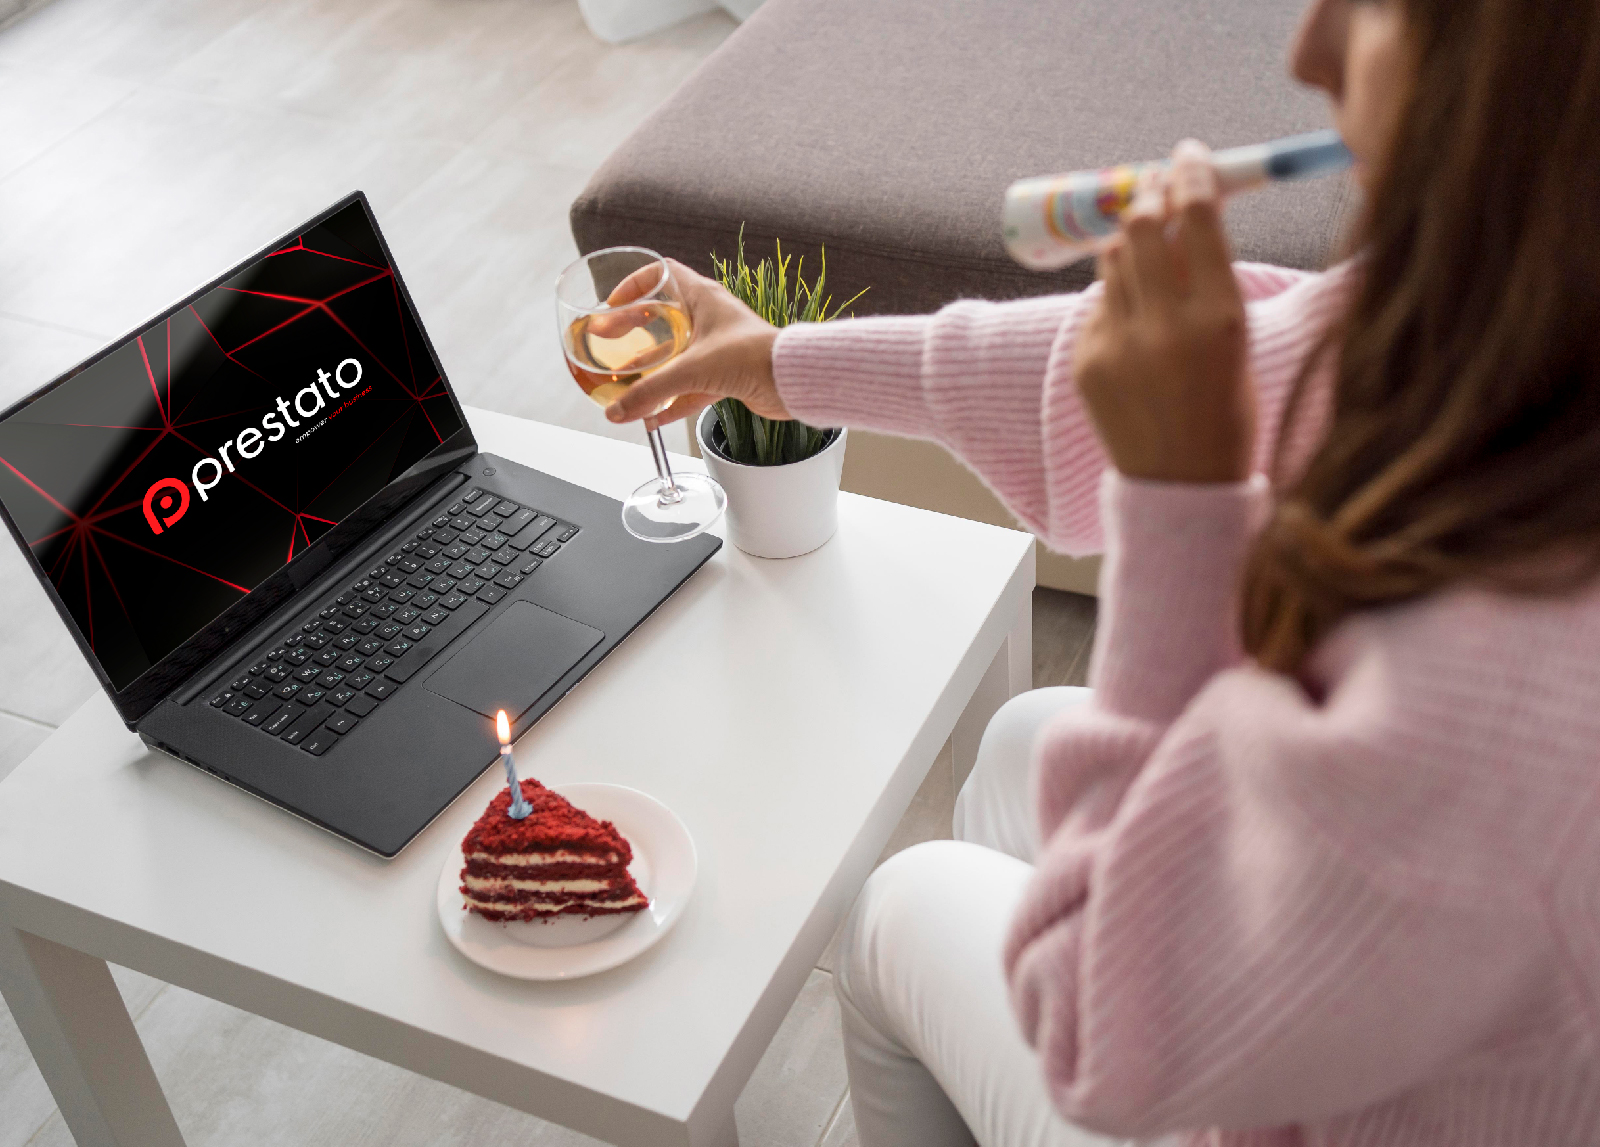 Woman celebrating with wine and cake, laptop with Prestato logo